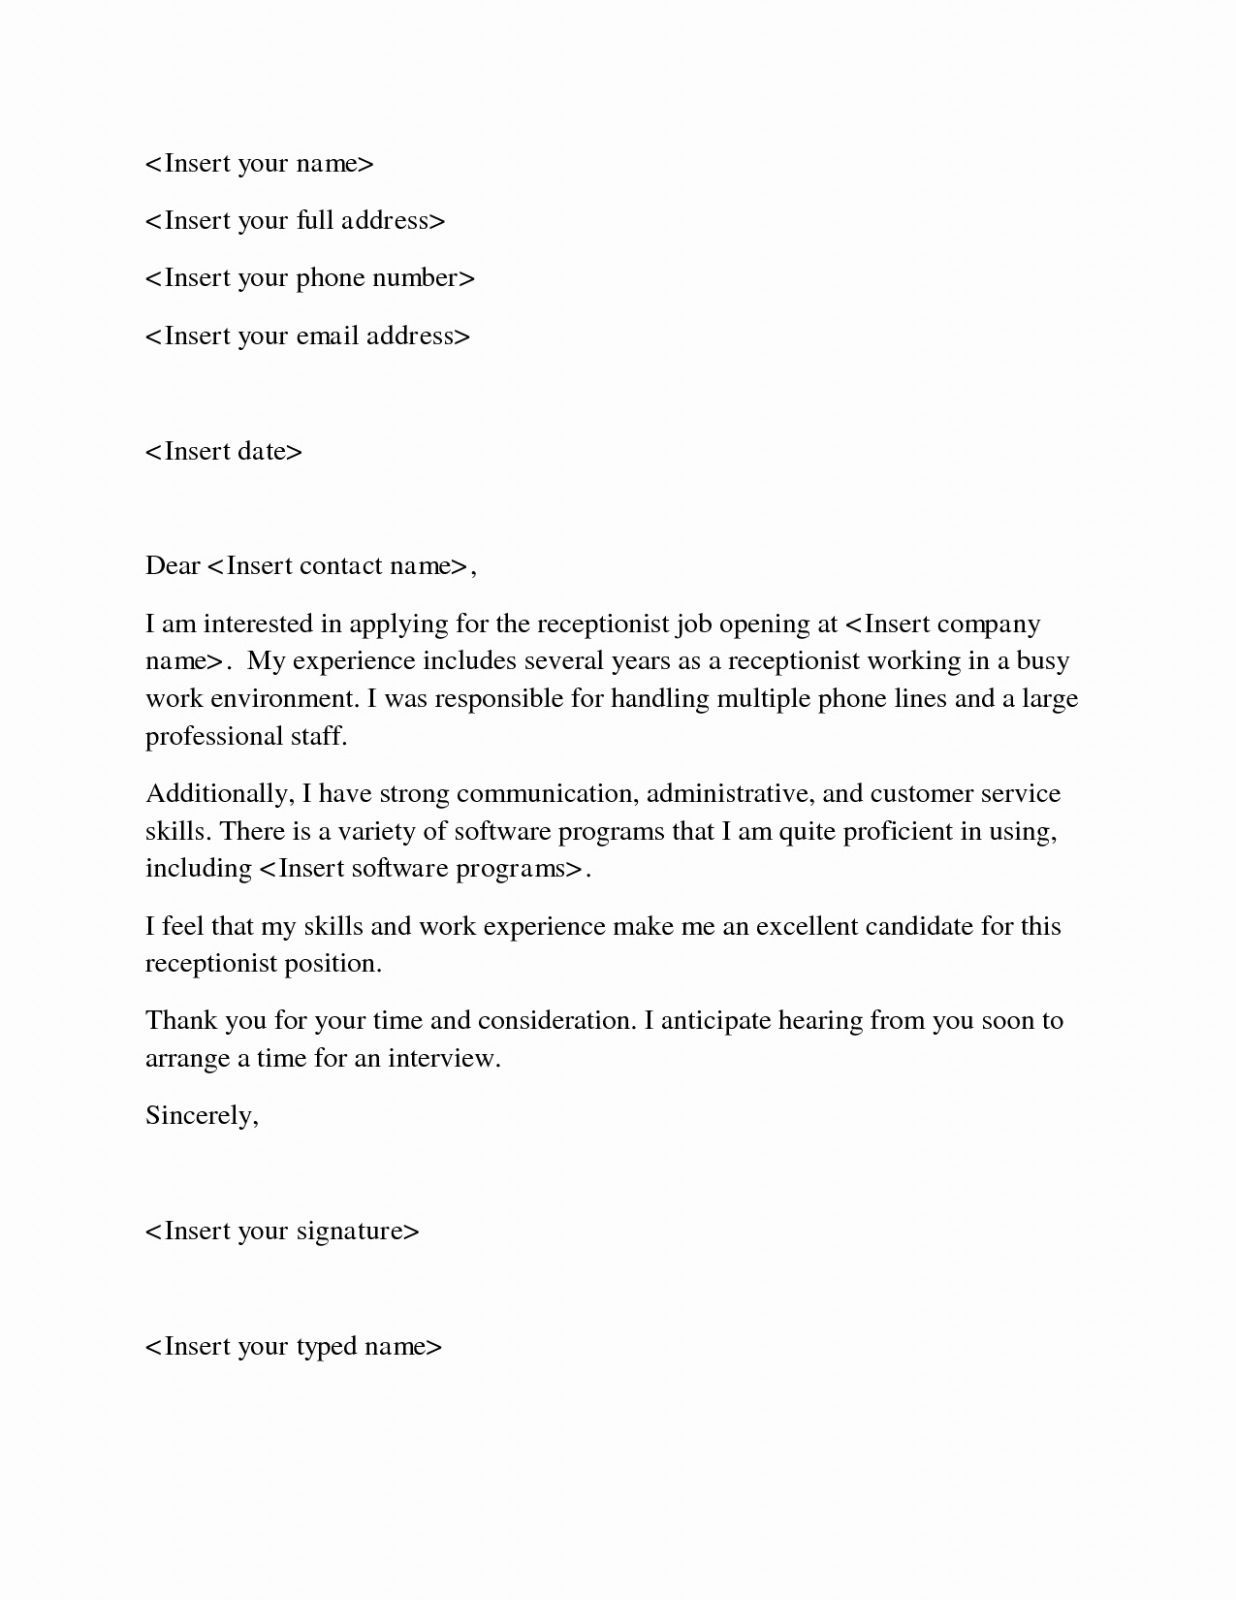 Cover Letter For Resume Writing A Cover Letter Cover Letter Template Cover Letter Exam In 2020 Cover Letter For Resume Writing A Cover Letter Job Cover Letter